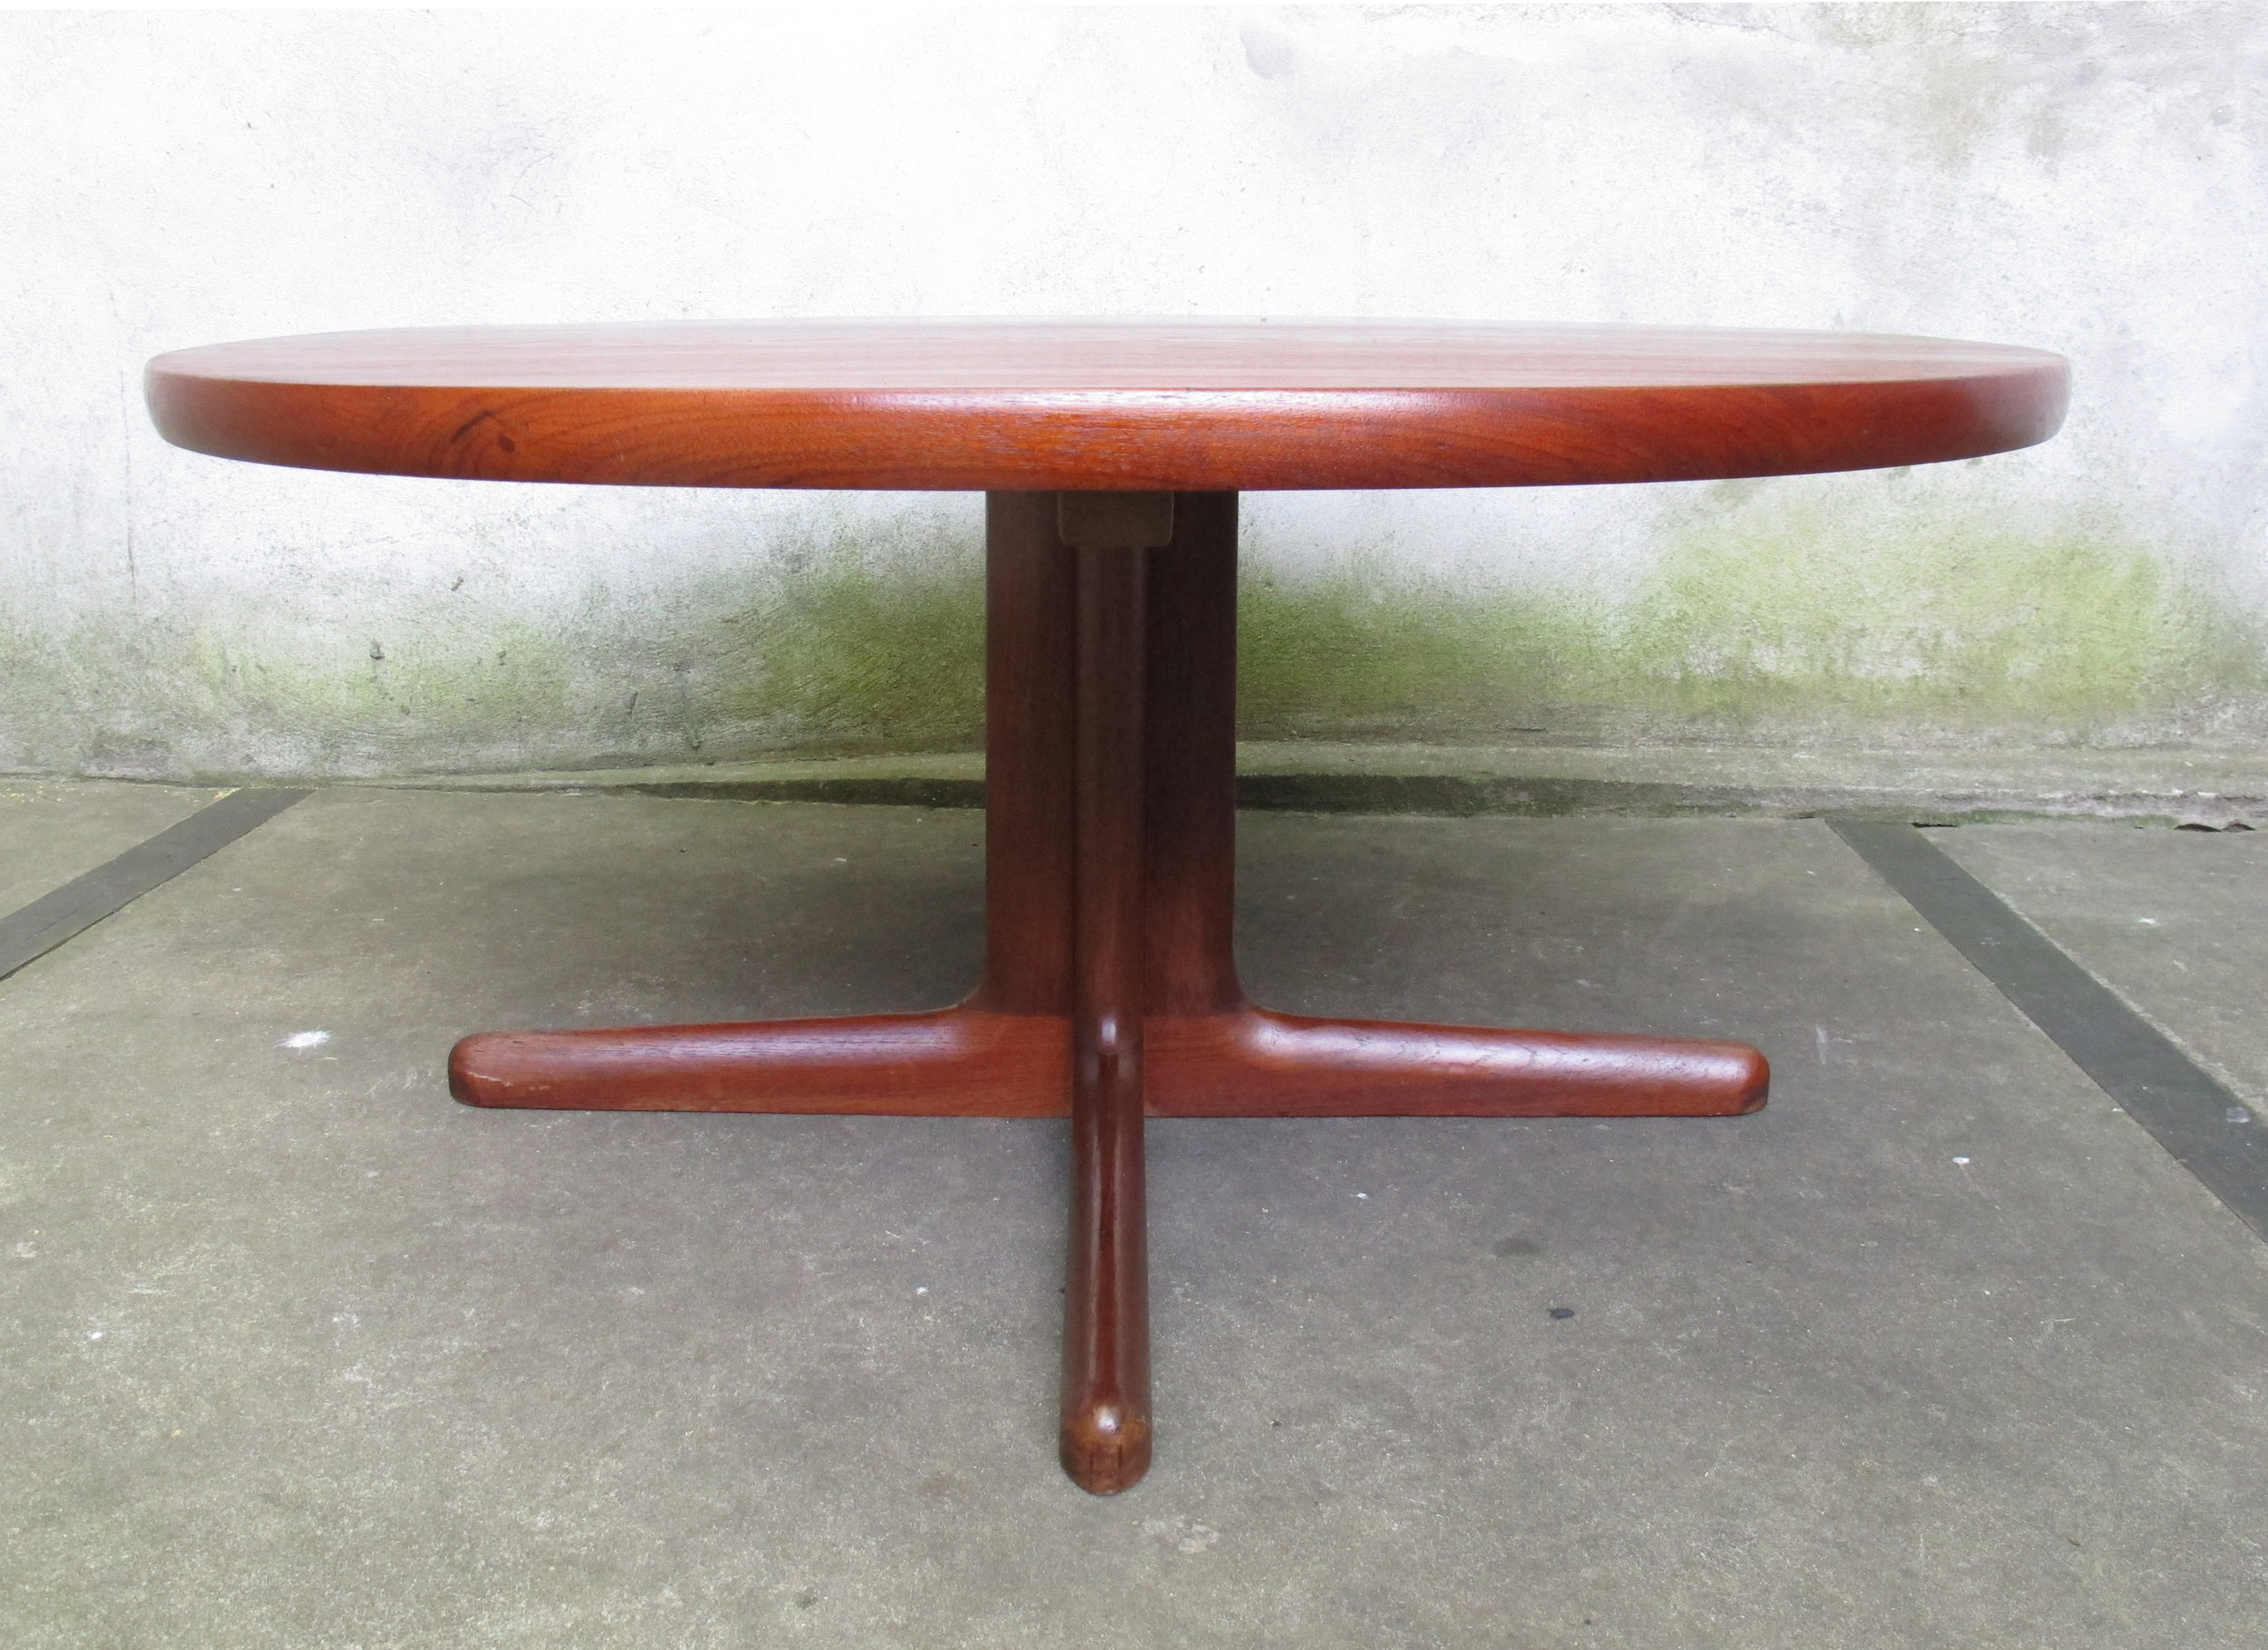 NIELS MOLLER DANISH MODERN ROUND TEAK COFFEE TABLE BY GUDME MOBELFABRIKY